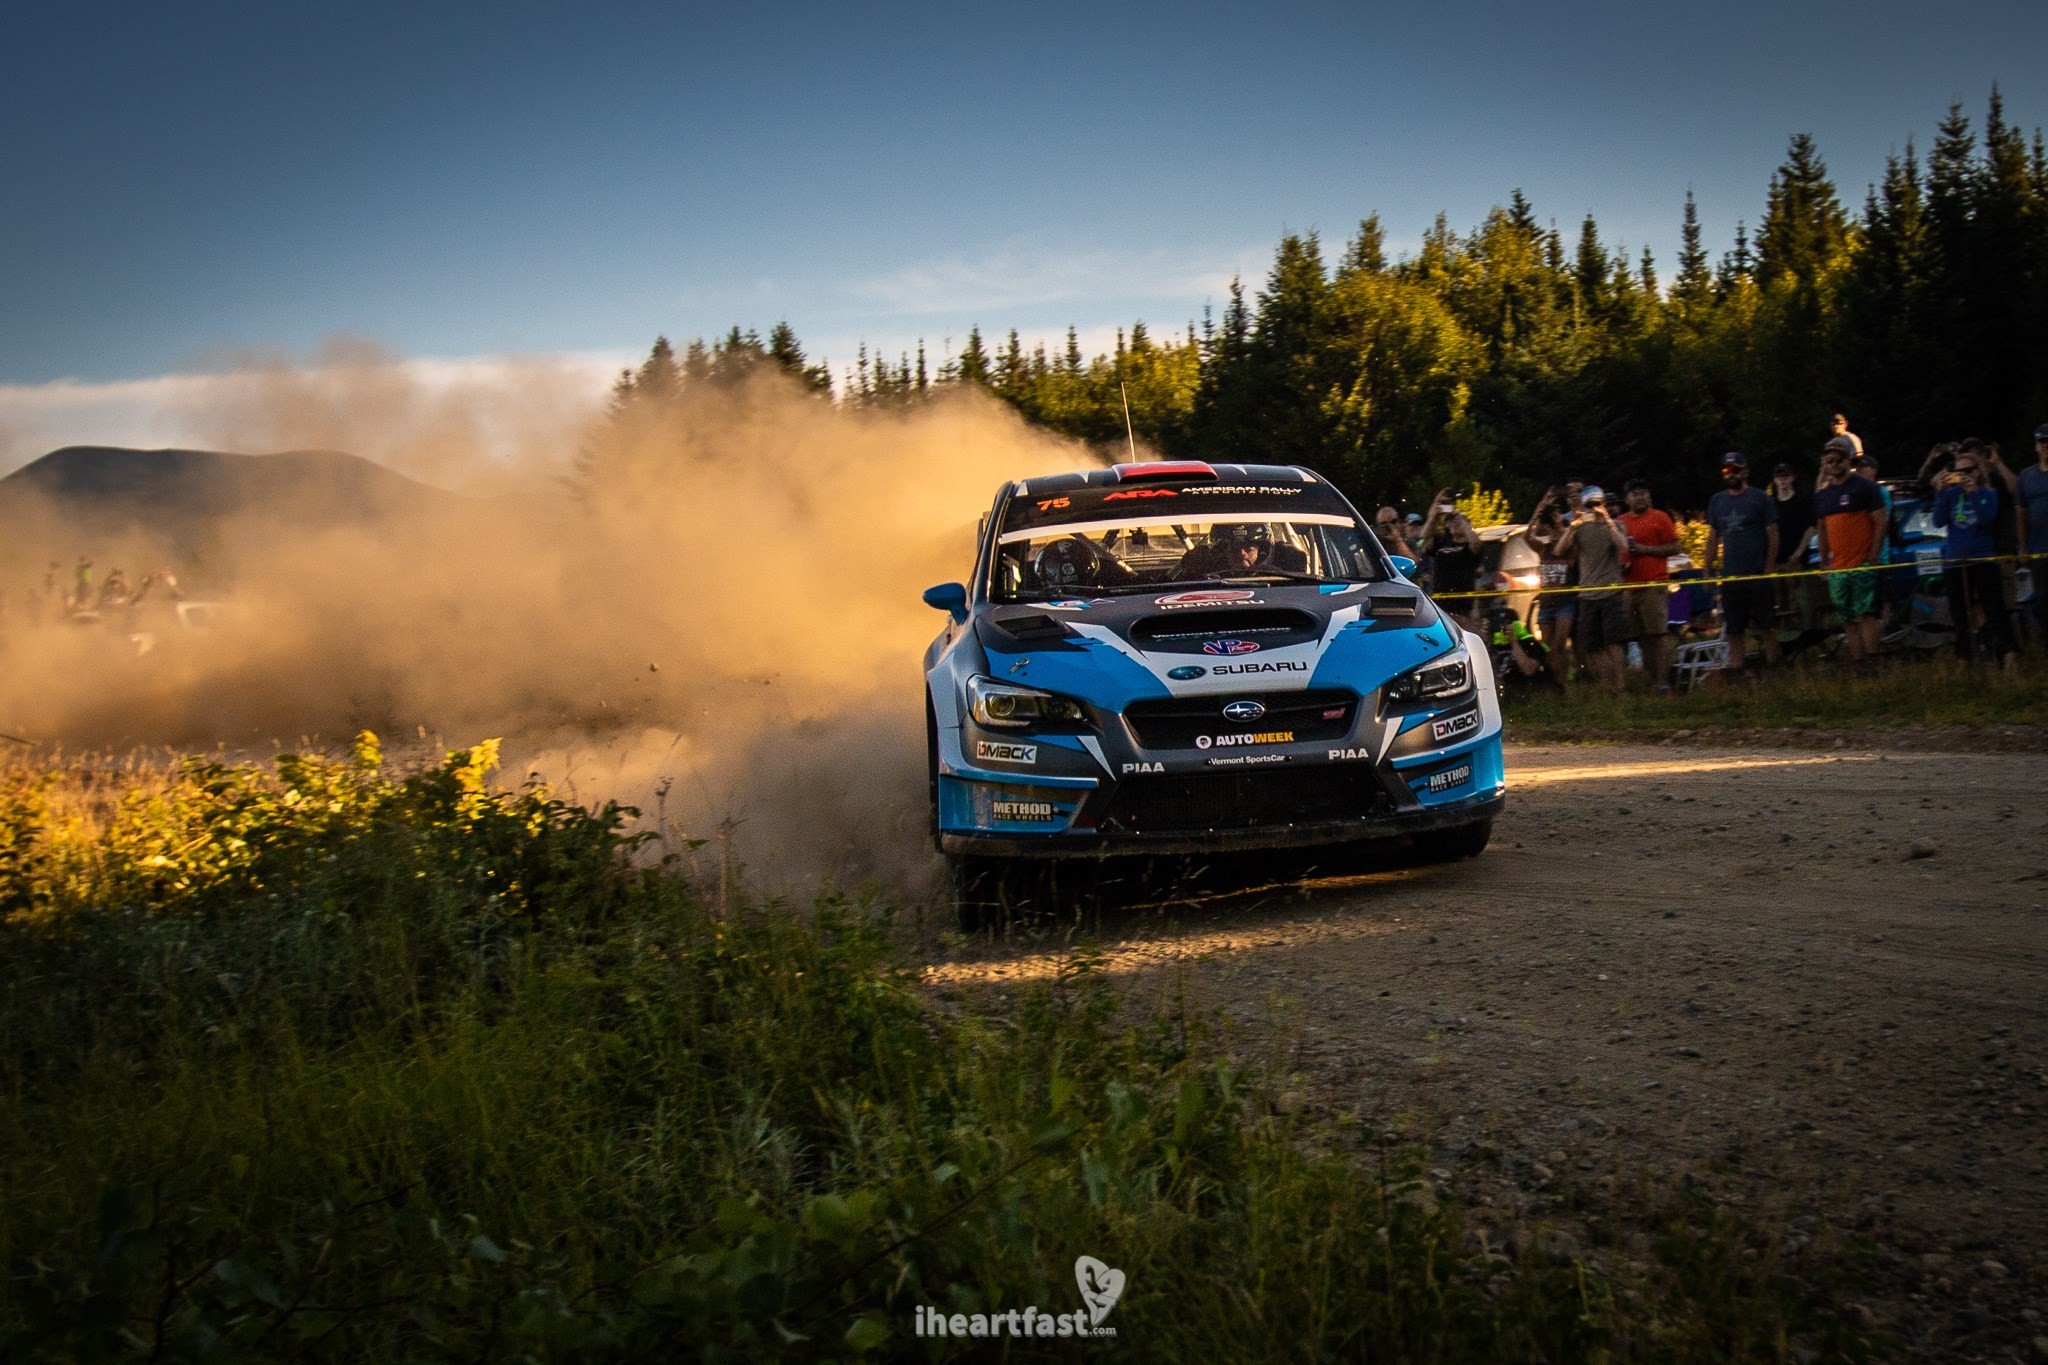 David Higgins and Craig drew head into Ojibwe Forest Rally with the championship lead